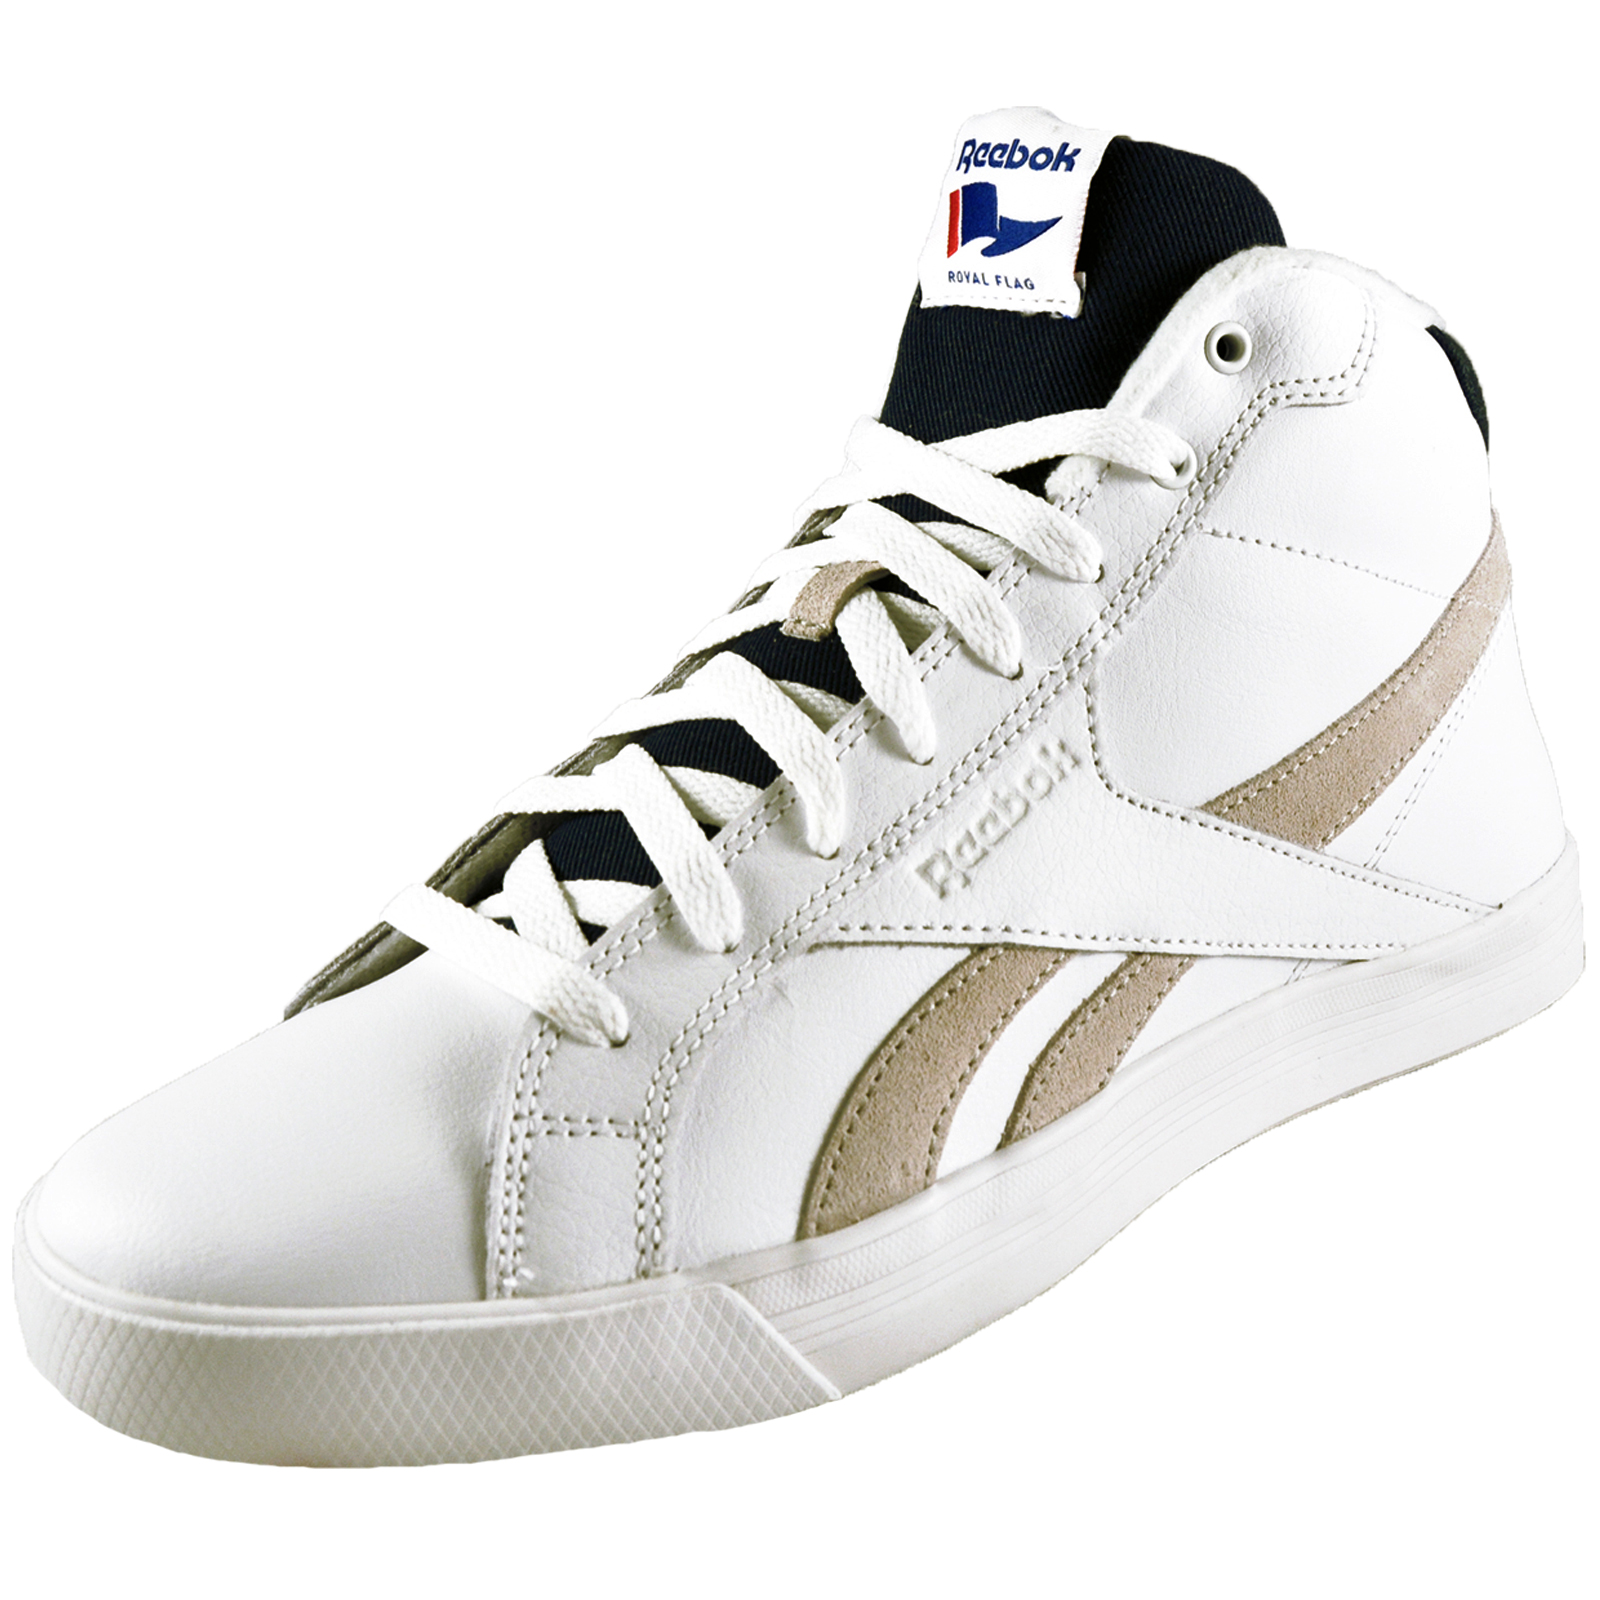 f2109f441 Details about Reebok Royal Complete Classic Men's Causal Fashion Retro Mid  Trainers White B Gr